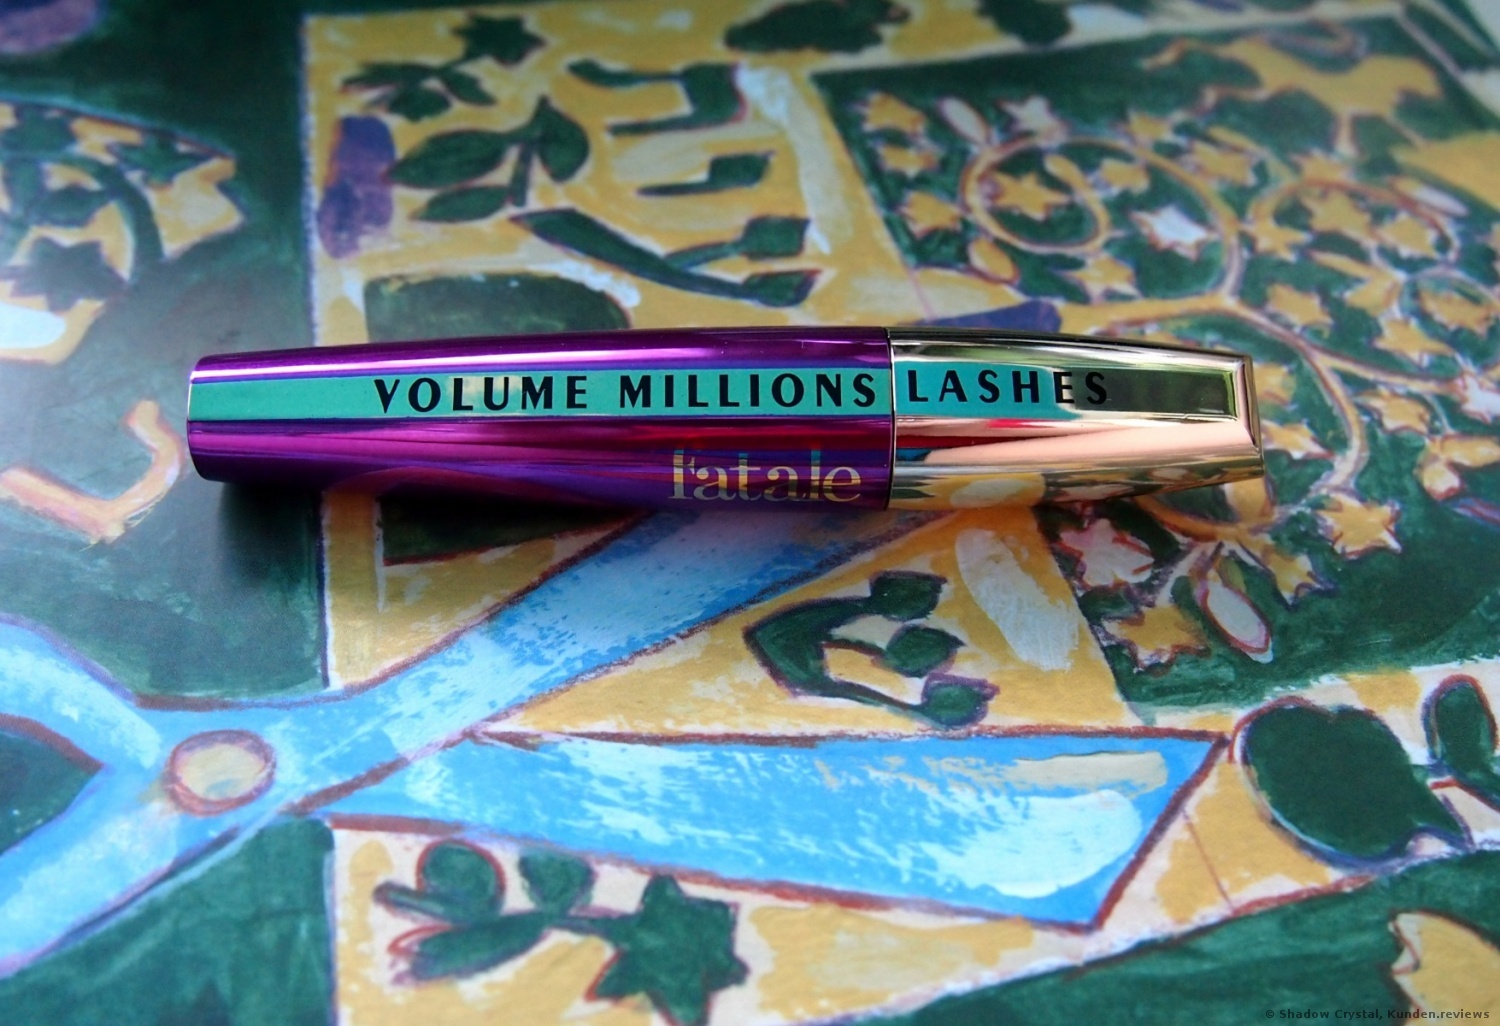 L'Oreal Volume Millions Lashes Fatale